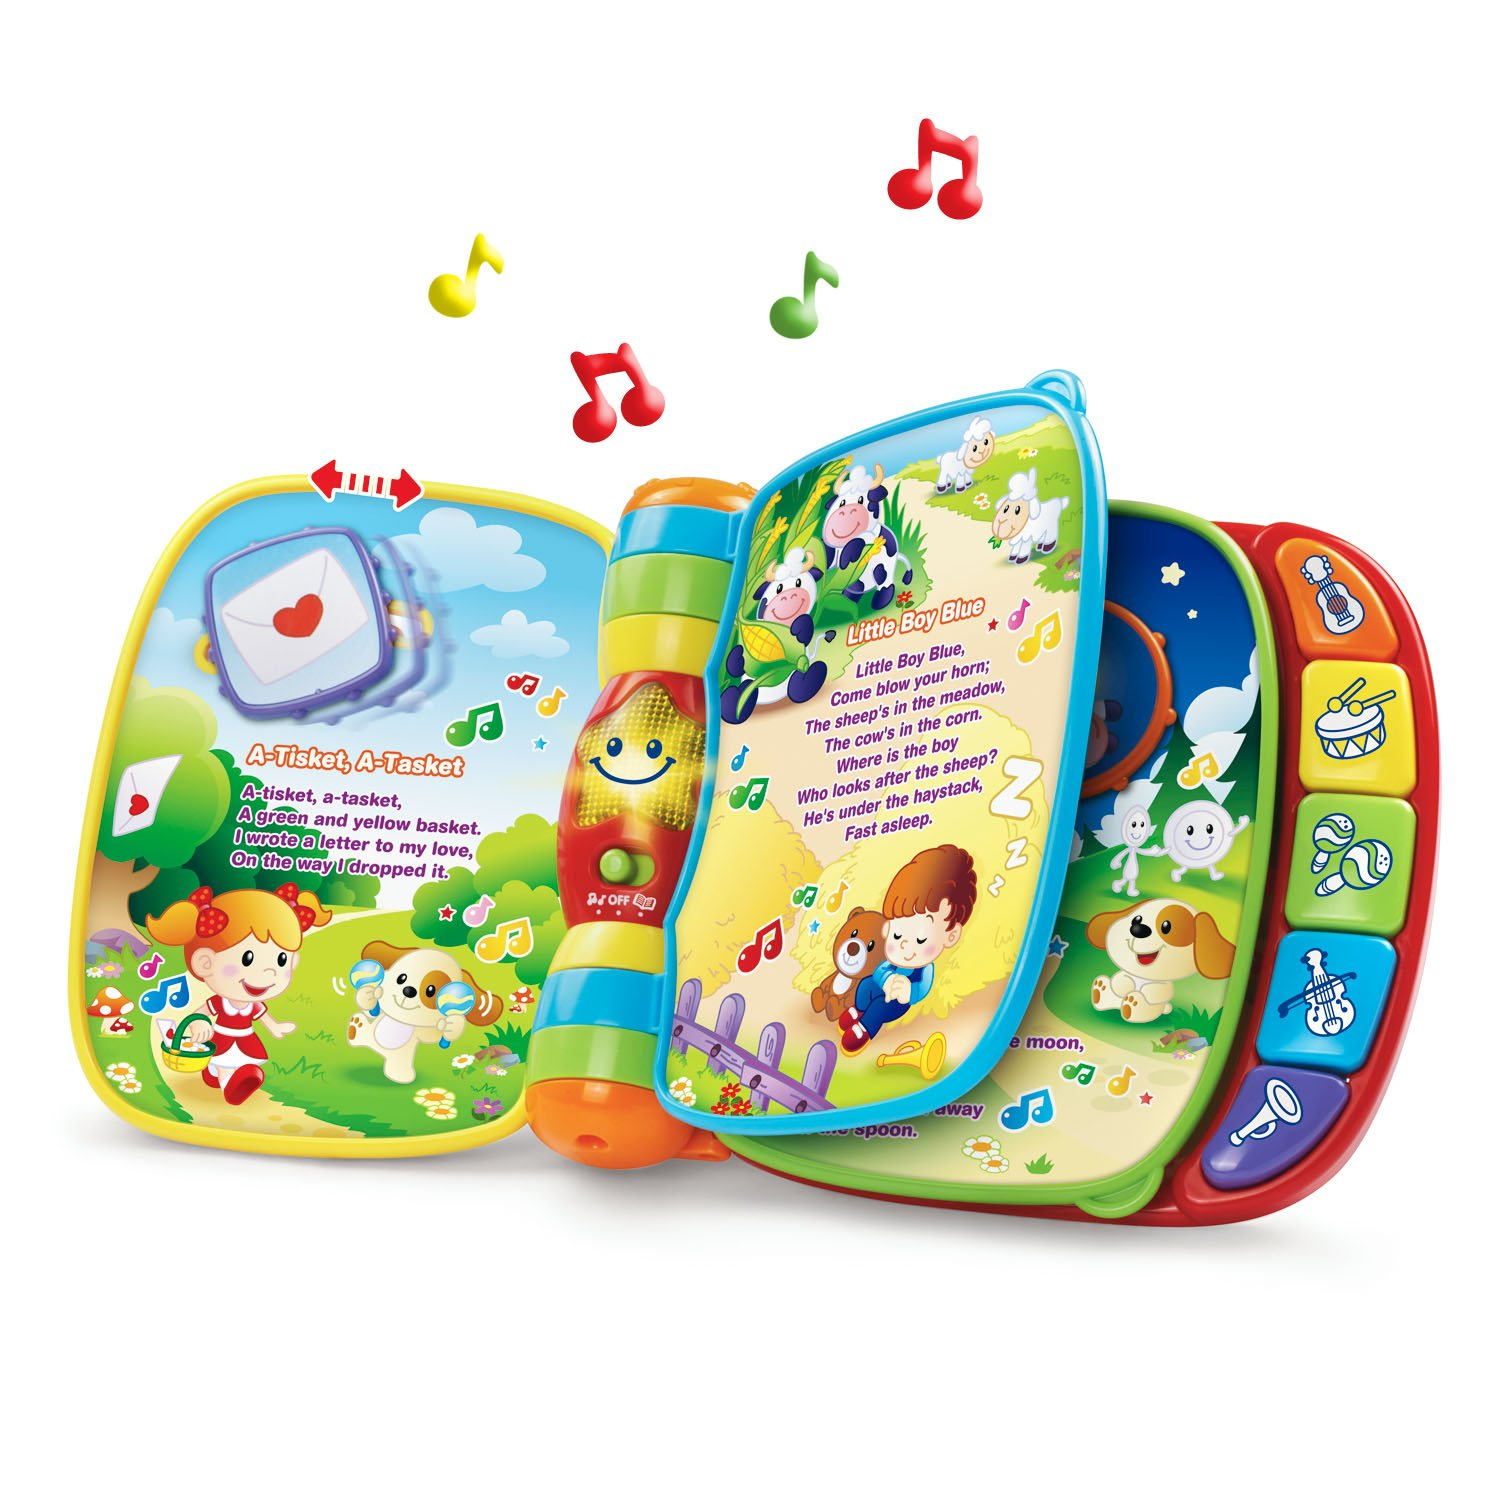 Amazon VTech Musical Rhymes Book Frustration Free Packaging